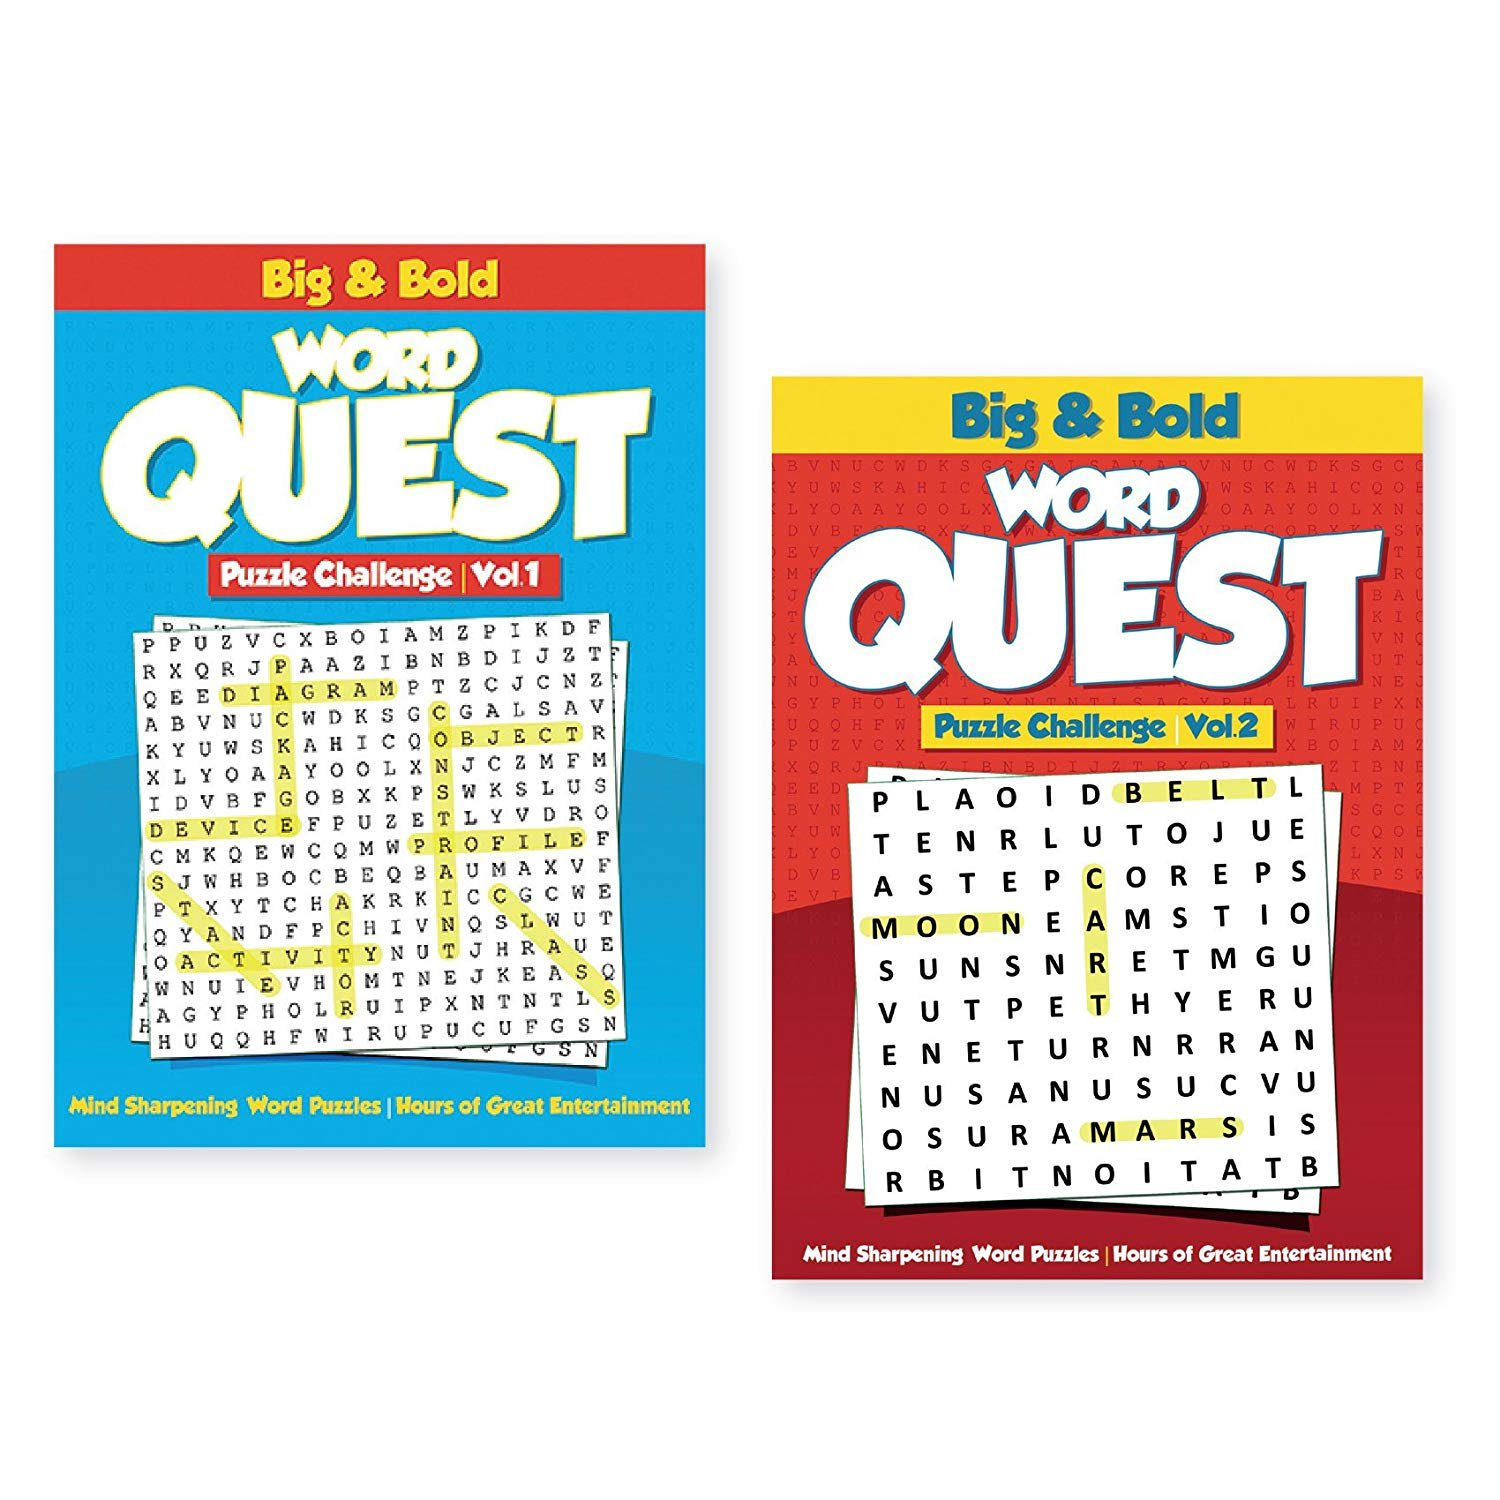 Details about 2 Pack Giant Print Find A Word Puzzle Books